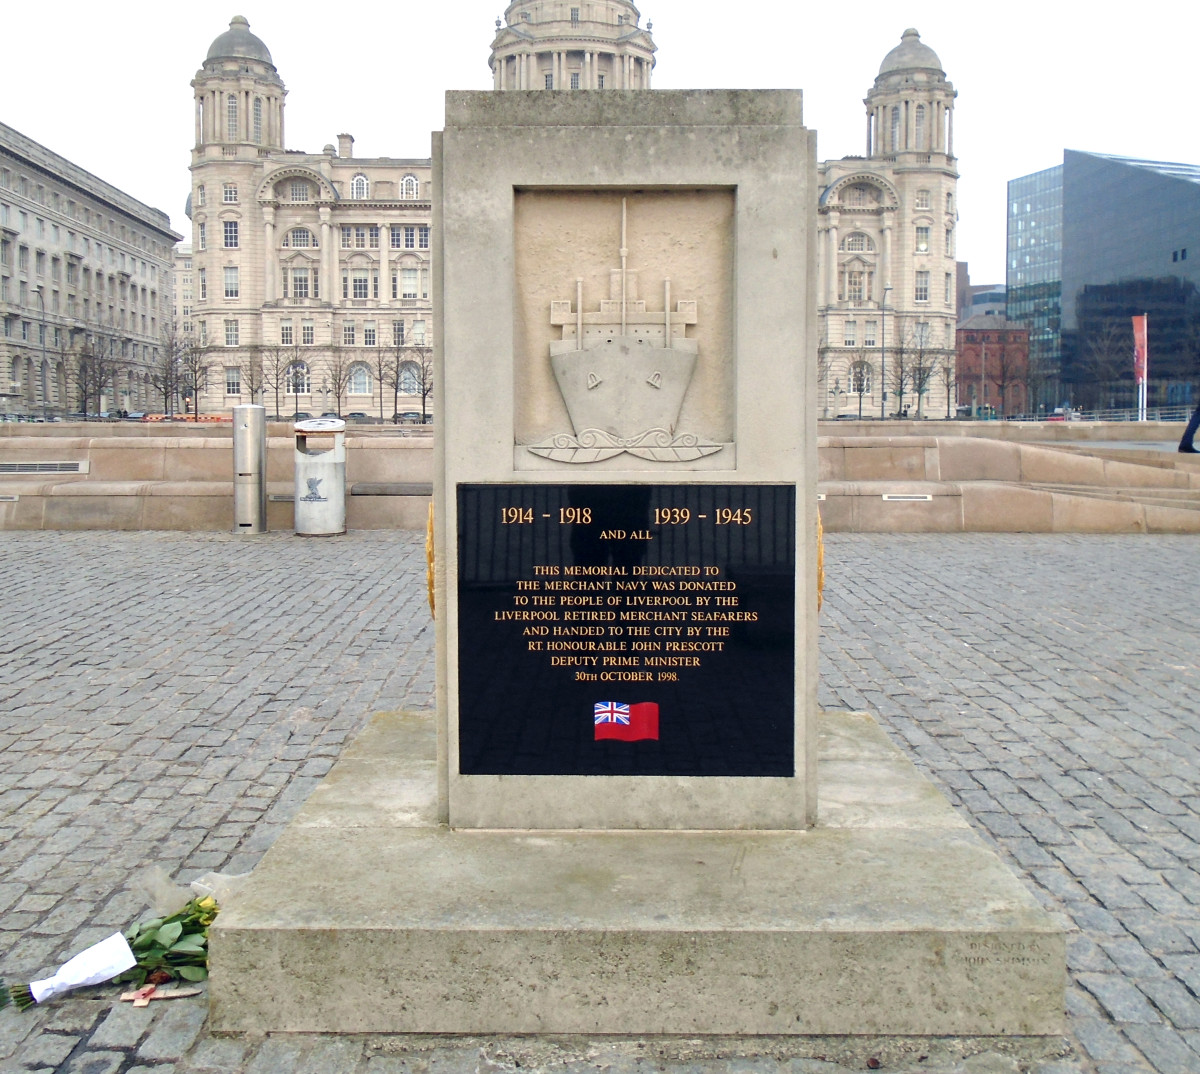 The Merchant Navy Memorial in Liverpool at Pier Head, near the River Mersey.